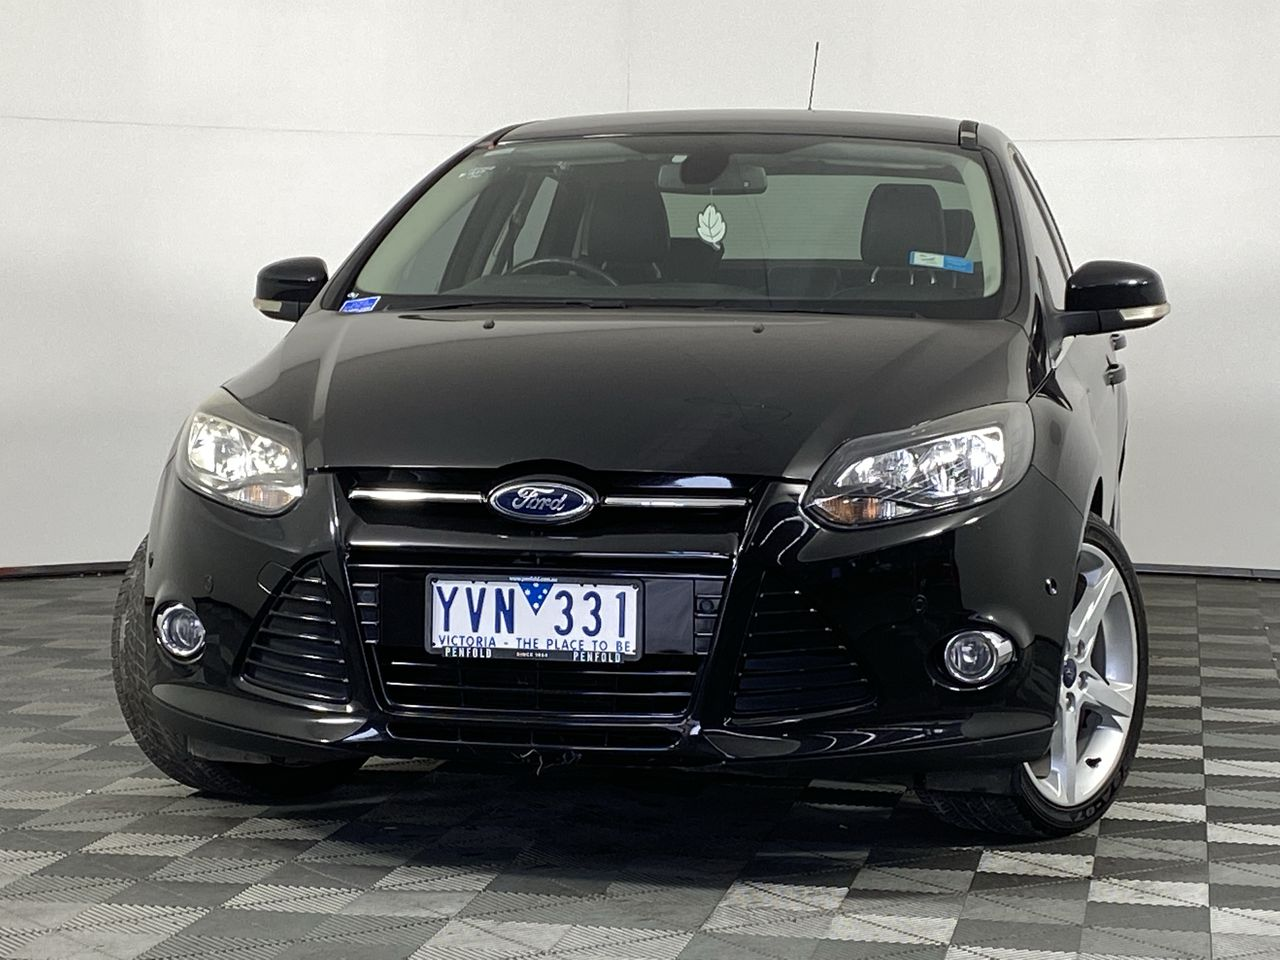 2011 Ford Focus Titanium LW Automatic Sedan